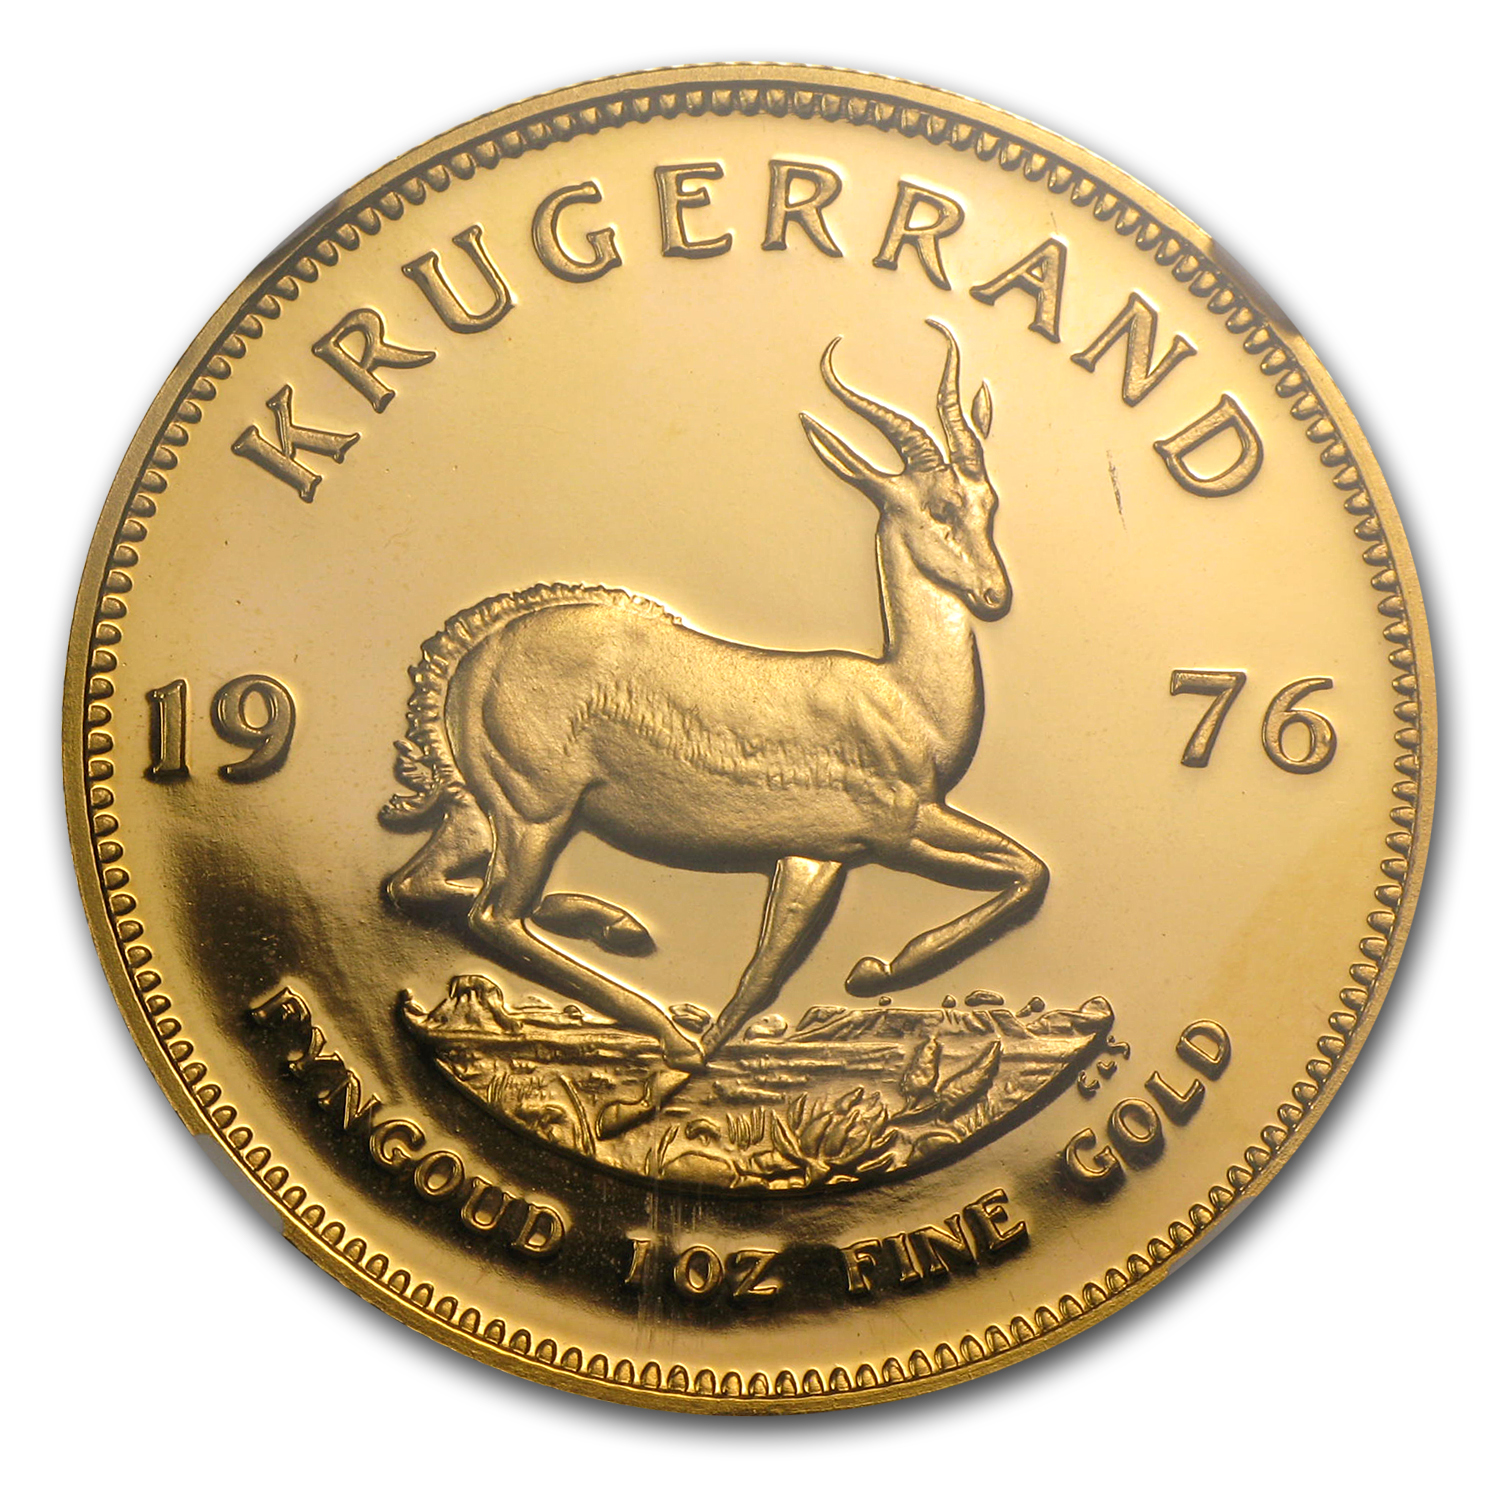 1976 1 oz Gold South African Krugerrand PF-67 NGC